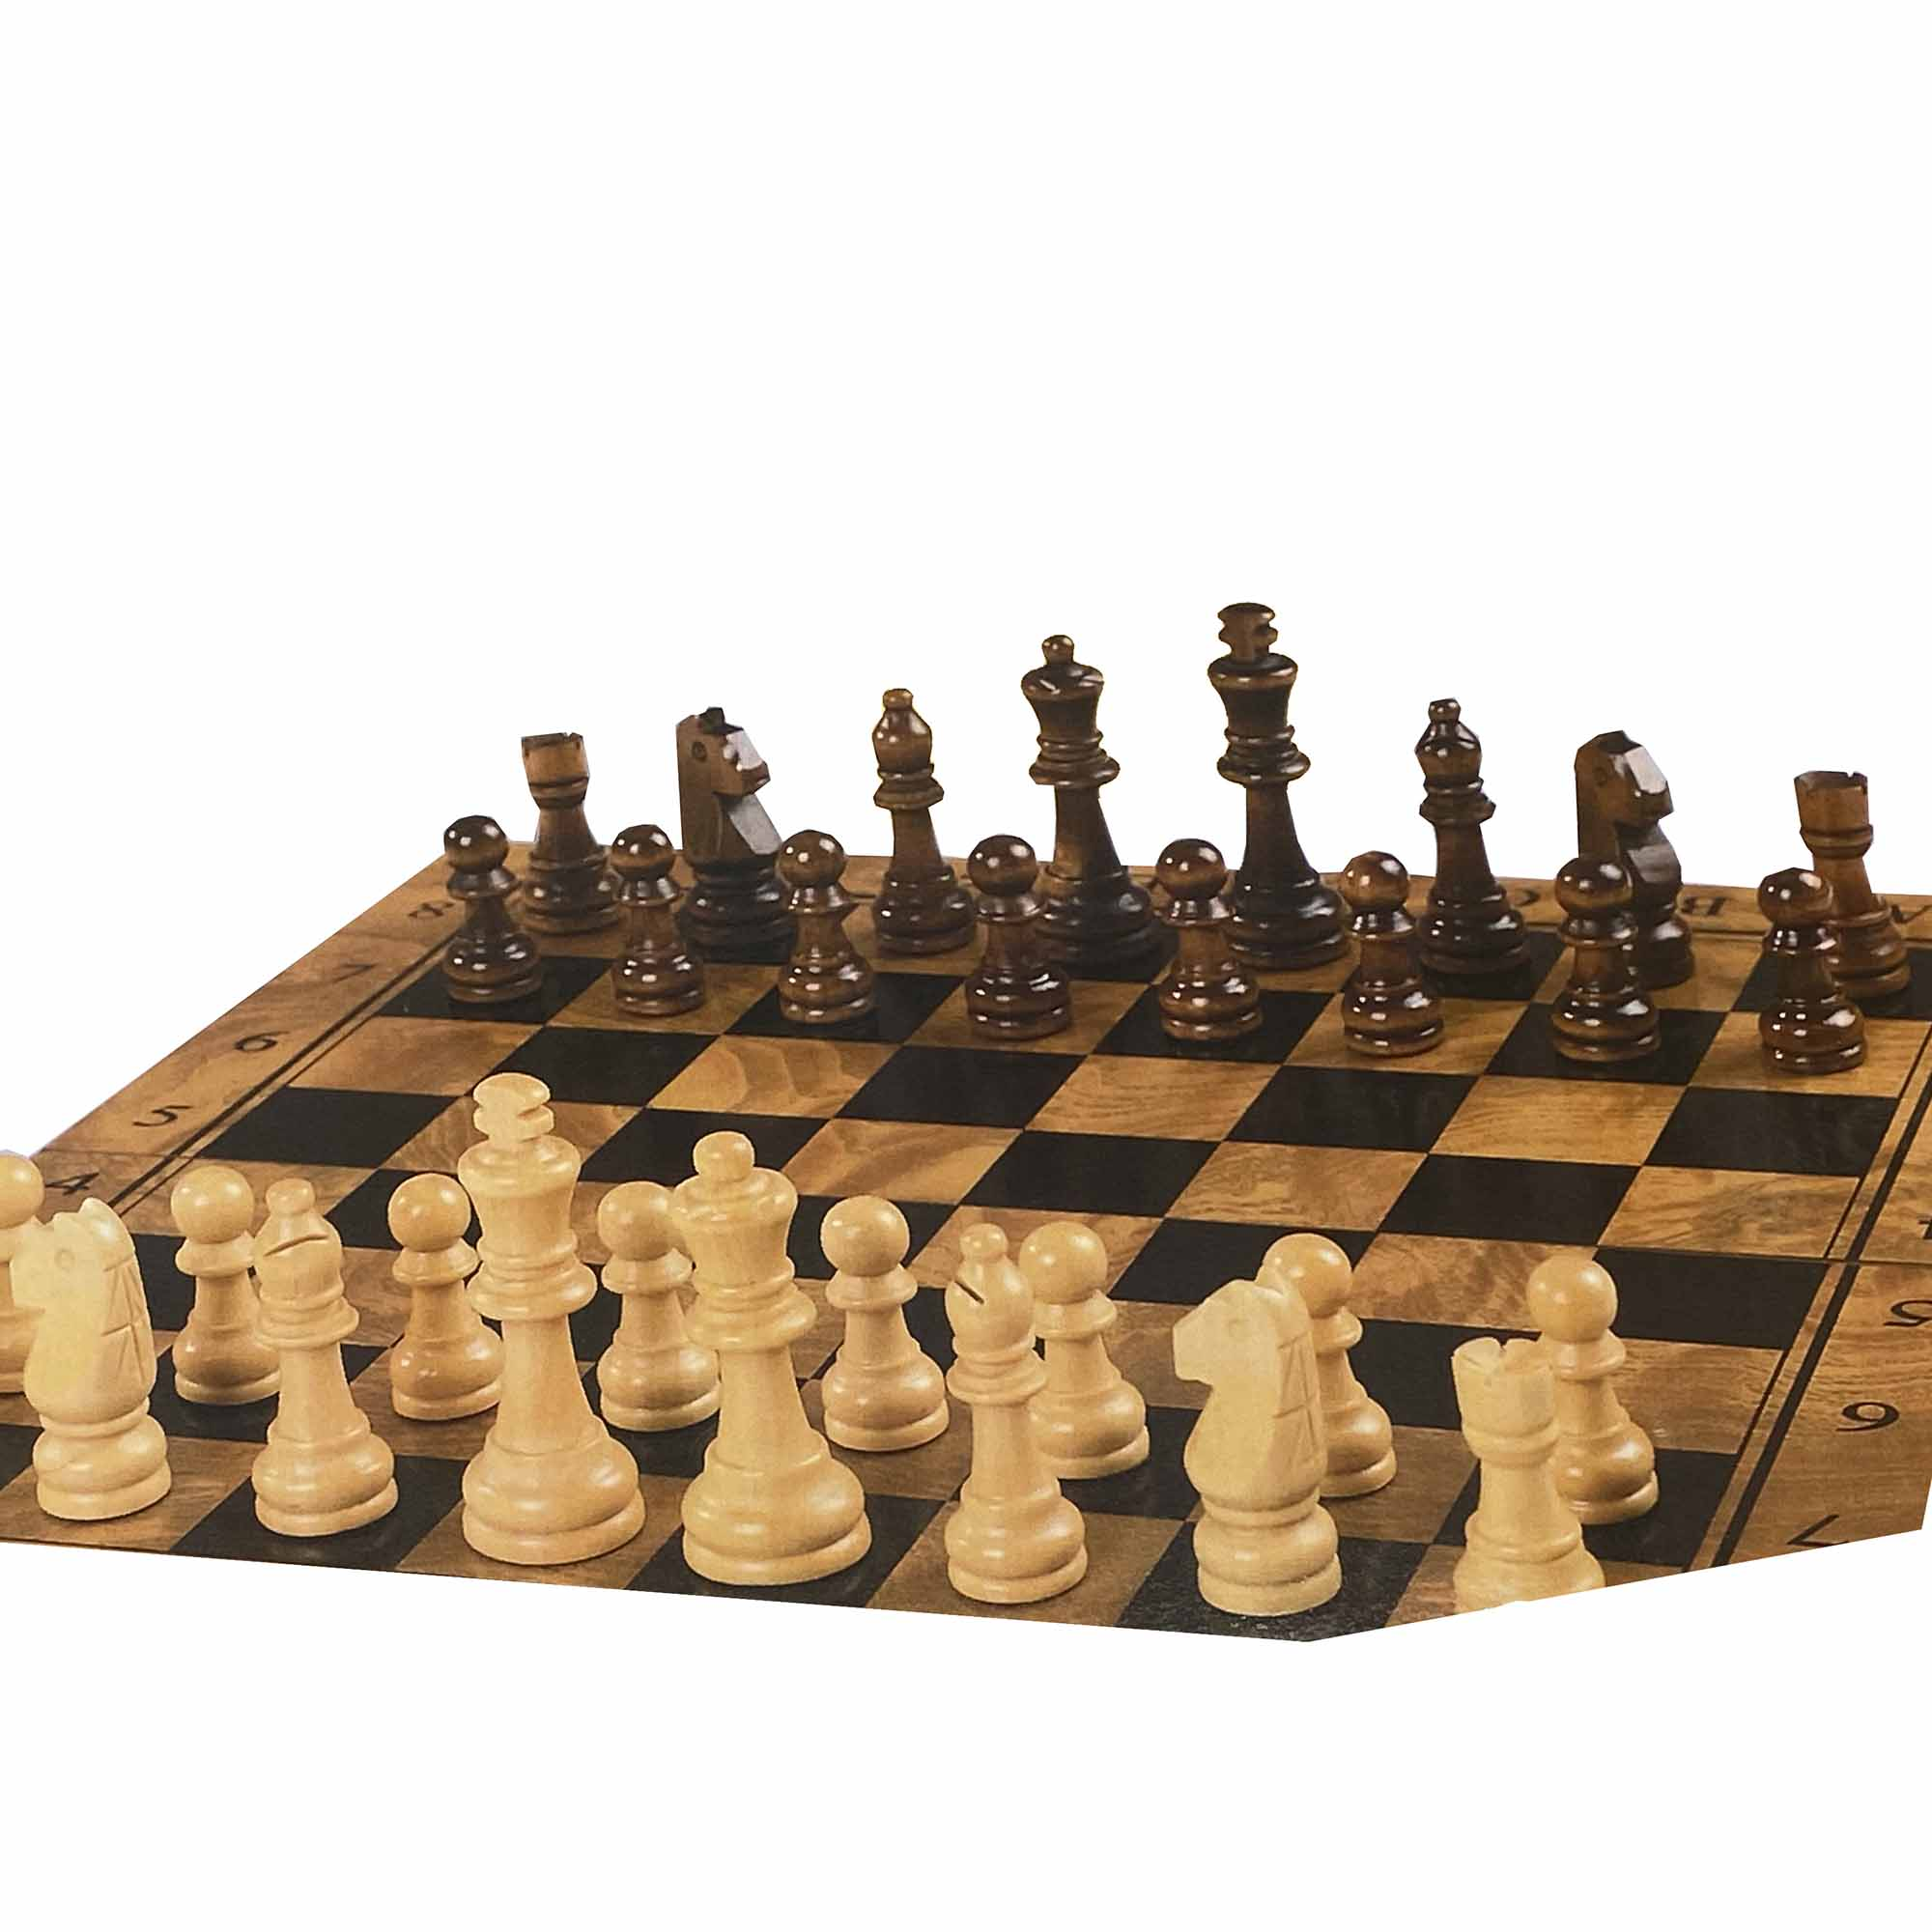 Wooden Chess Set / 3-in-1 Game Set - Jumbo